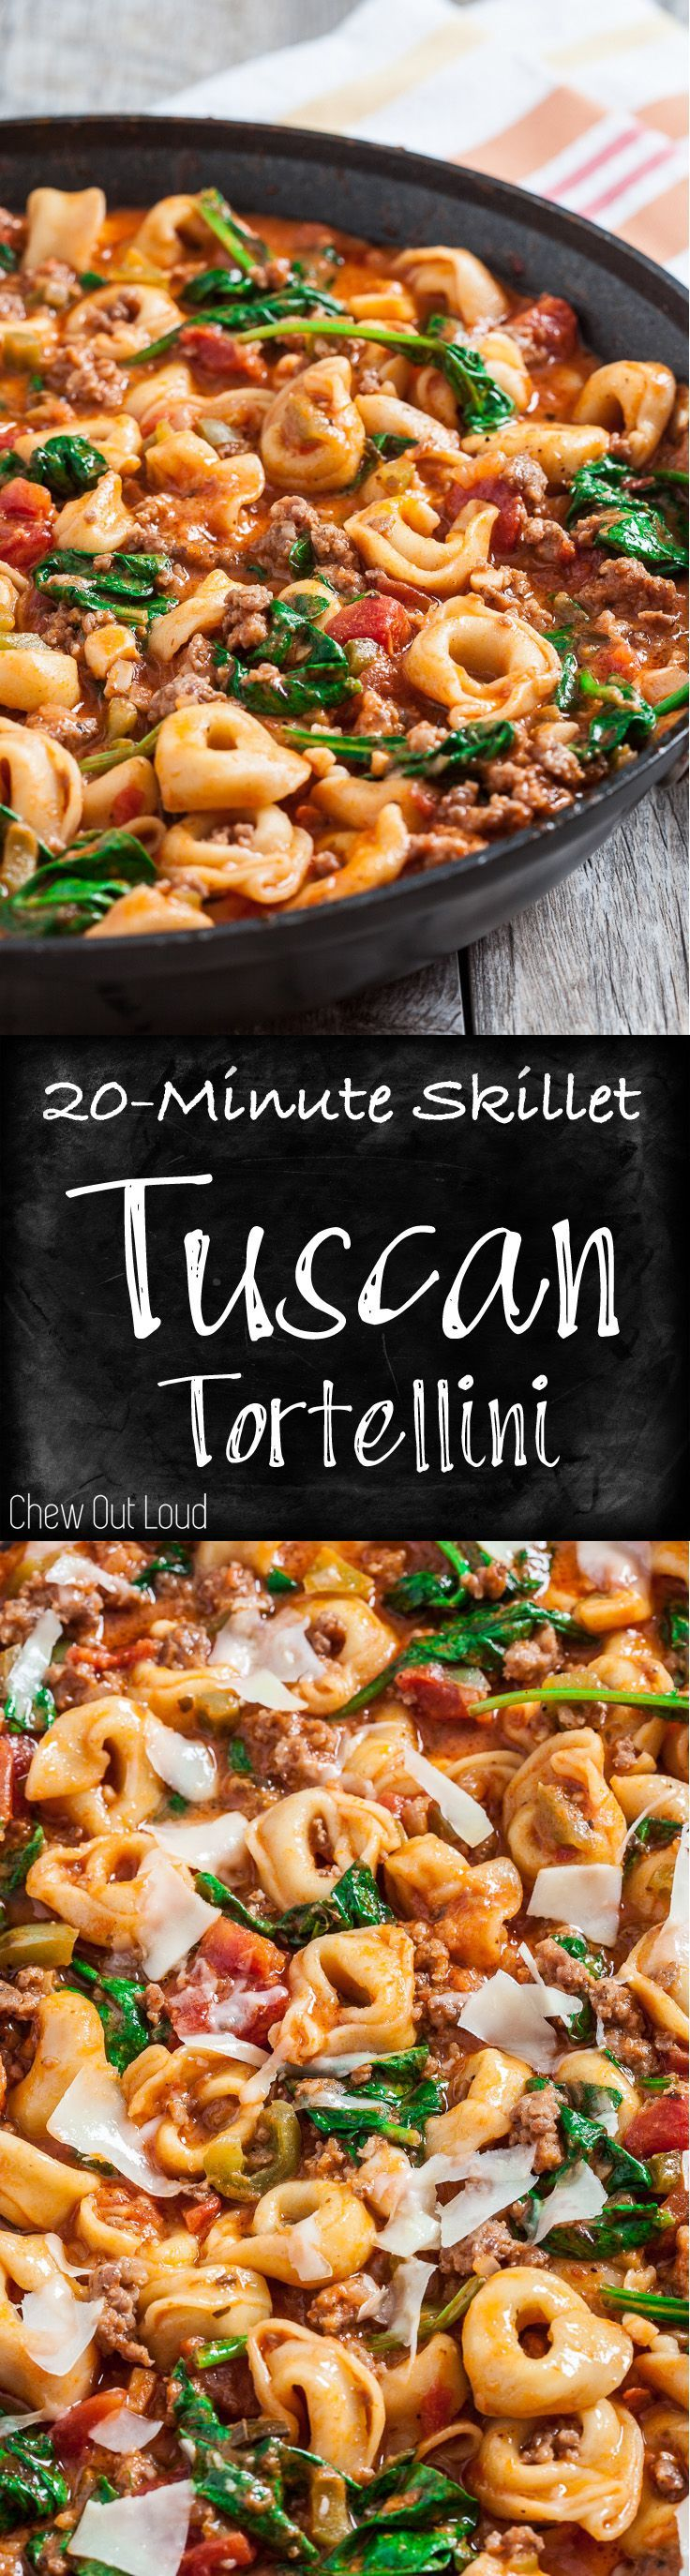 20 minute skillet tuscan tortellini recipe tortellini skillet 20 minute skillet tuscan tortellini quick comfort food at its best family forumfinder Choice Image